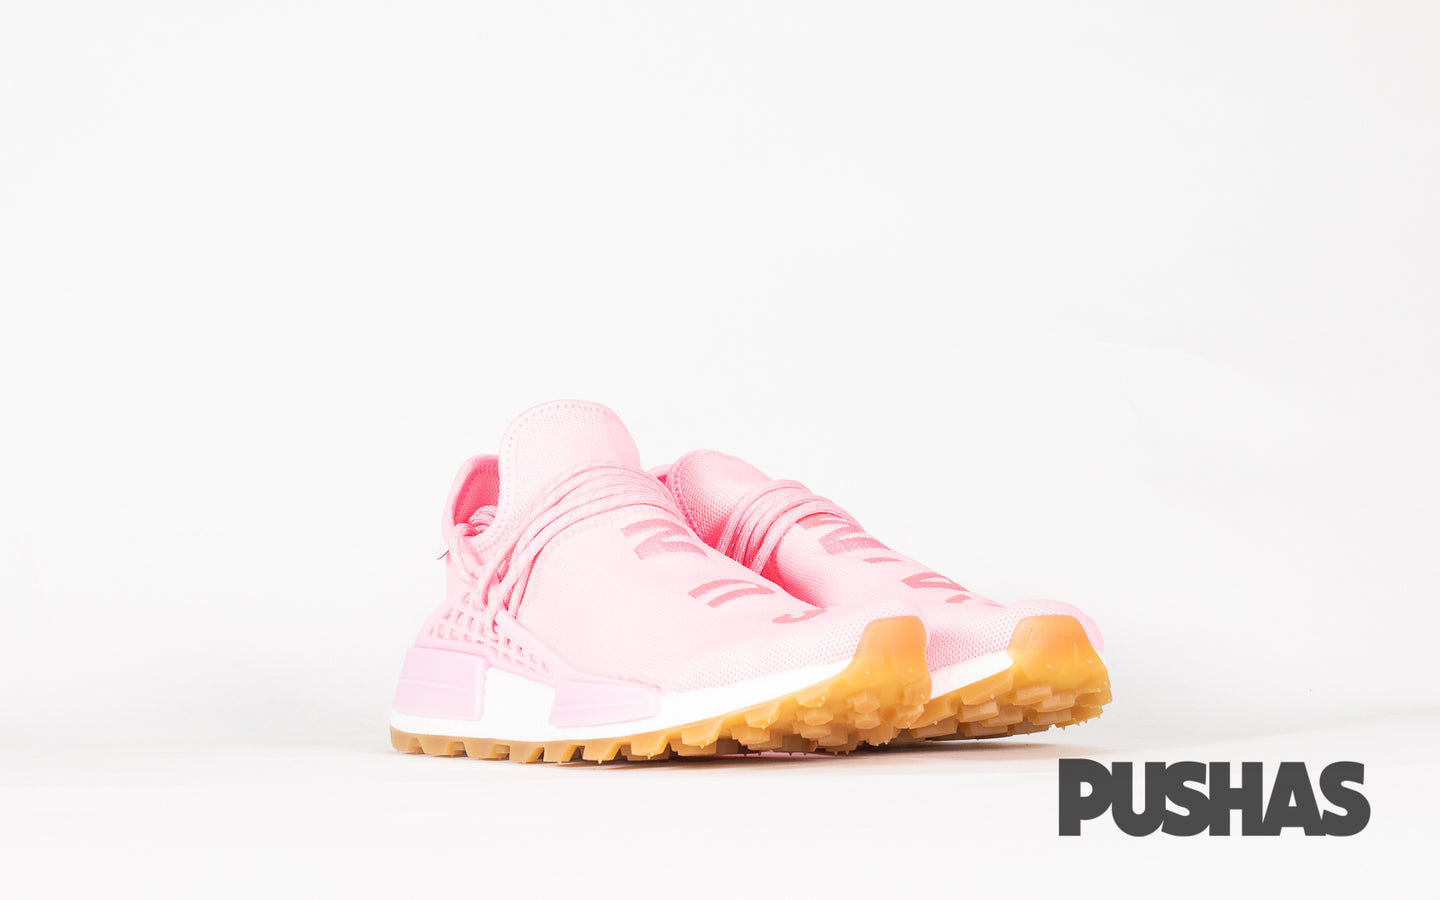 pushas-adidas-NMD-Hu-Trail-Pharrell-Now-Is-Her-Time-Light-Pink